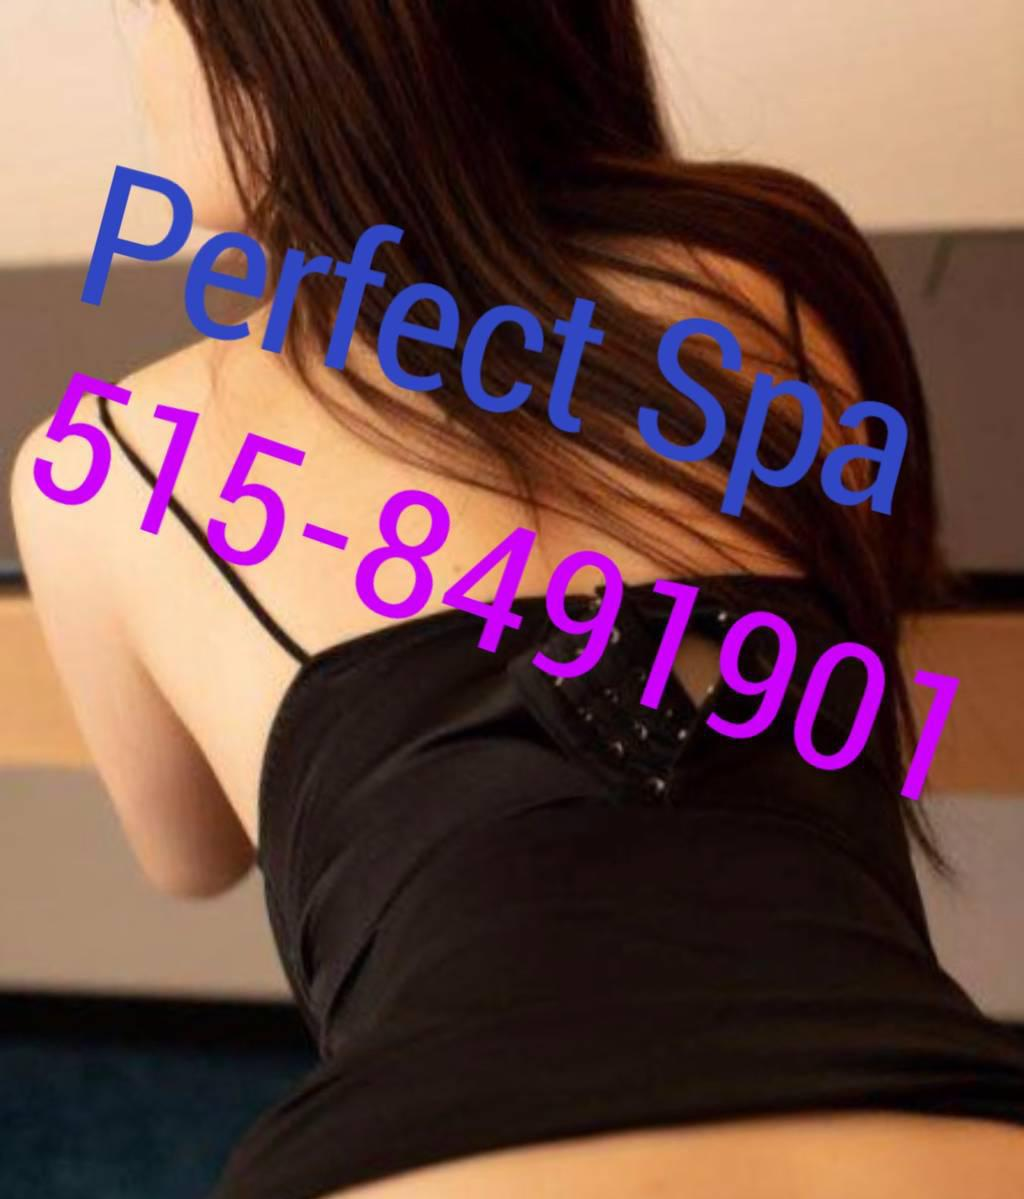 24h downtown perfect spa massage 5 sexy asian girls